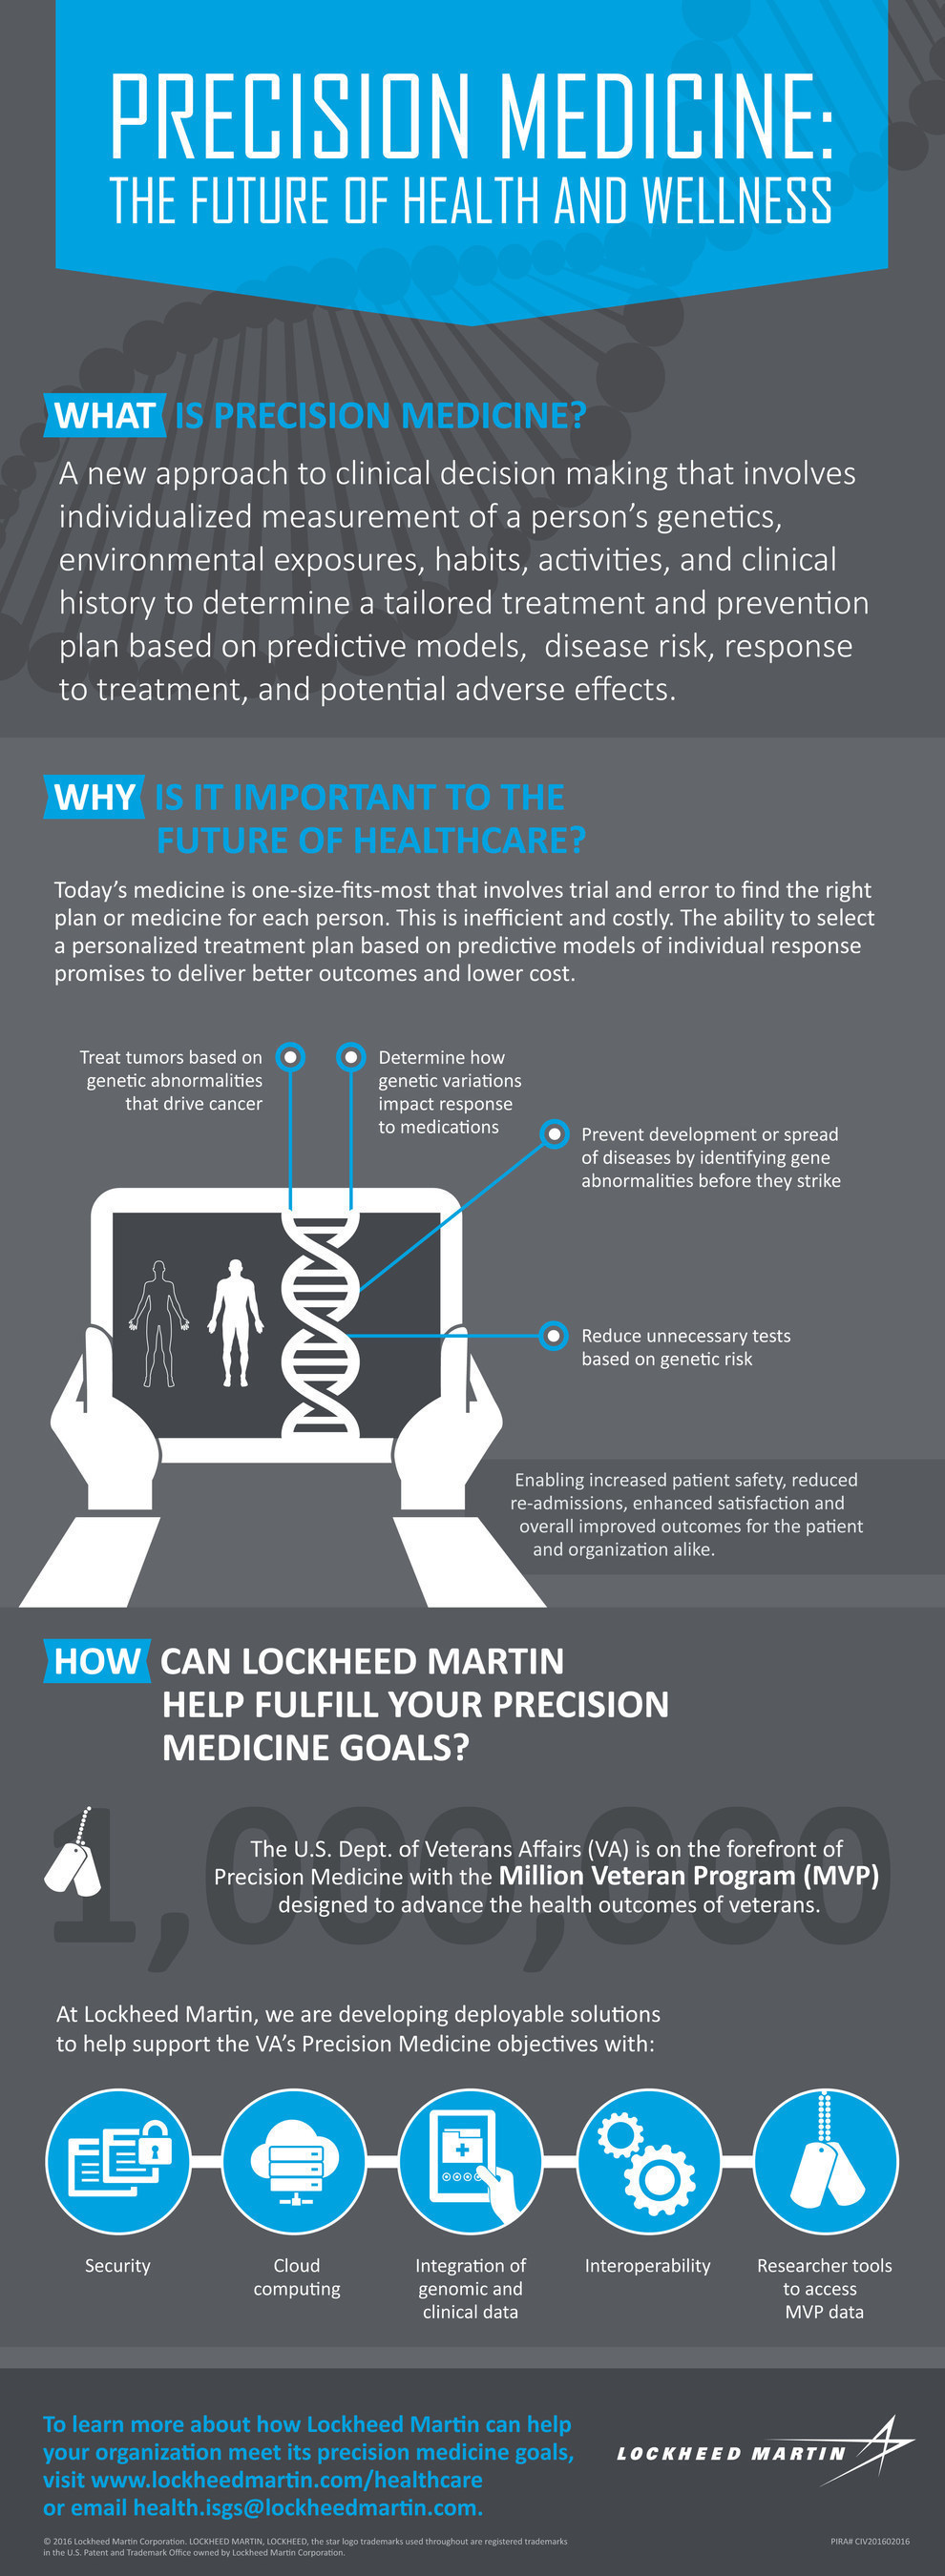 What is precision medicine and why is it important to the future of healthcare? Find answers through Lockheed Martin's precision medicine infographic.